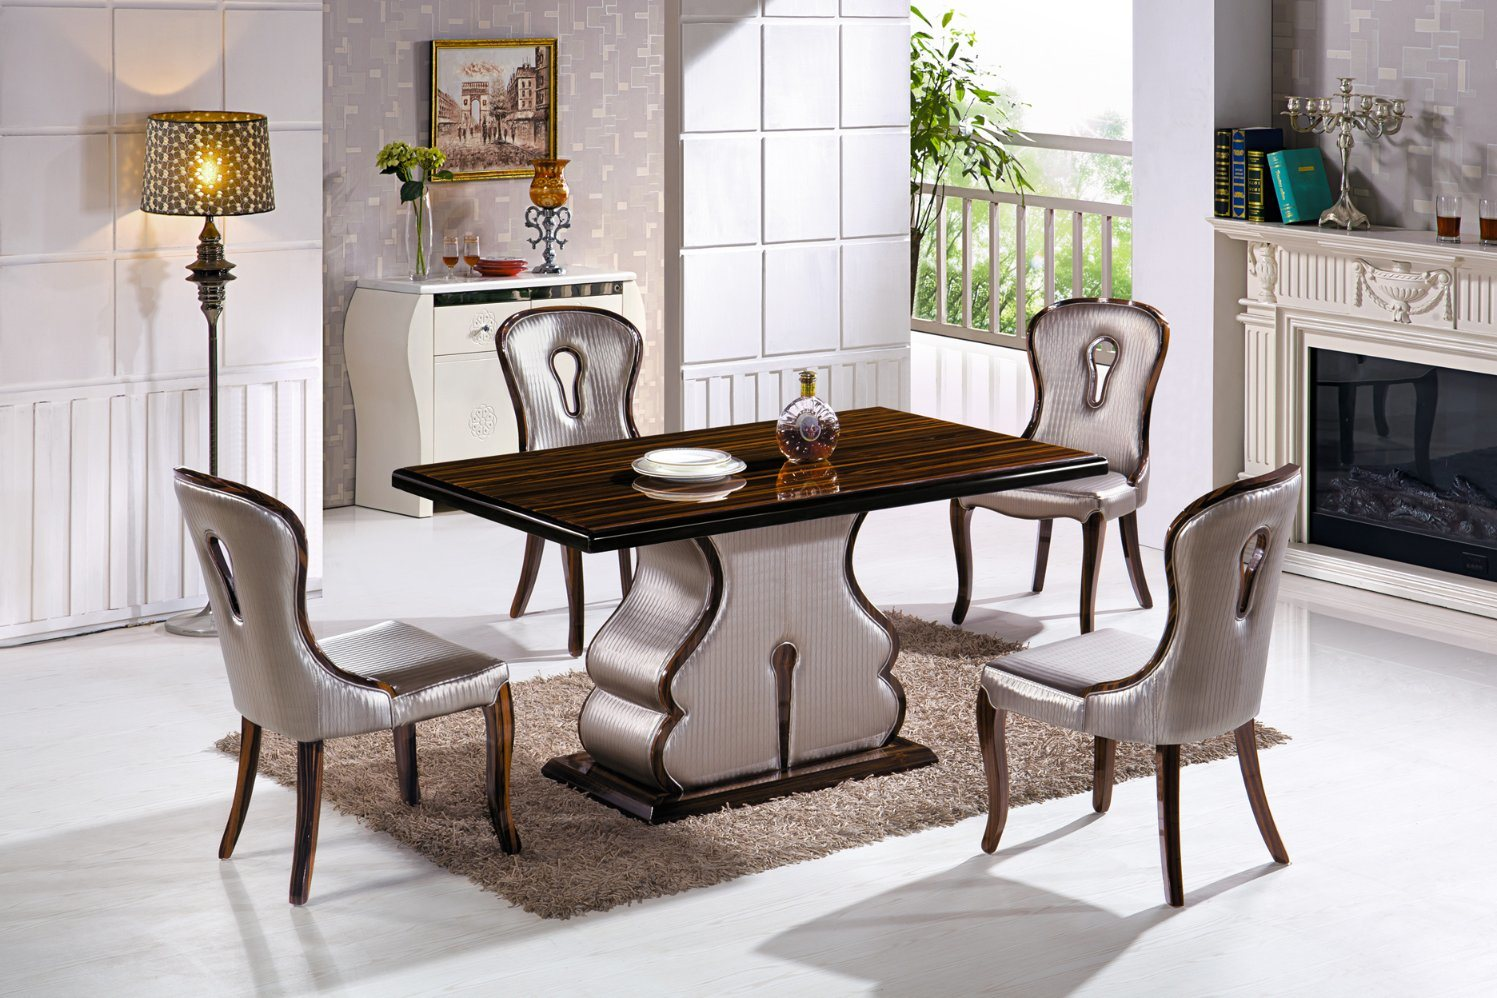 China 2018 New Design Marble Like Stone With Wood Dining Table Dining Chair China Dining Table Dining Chair